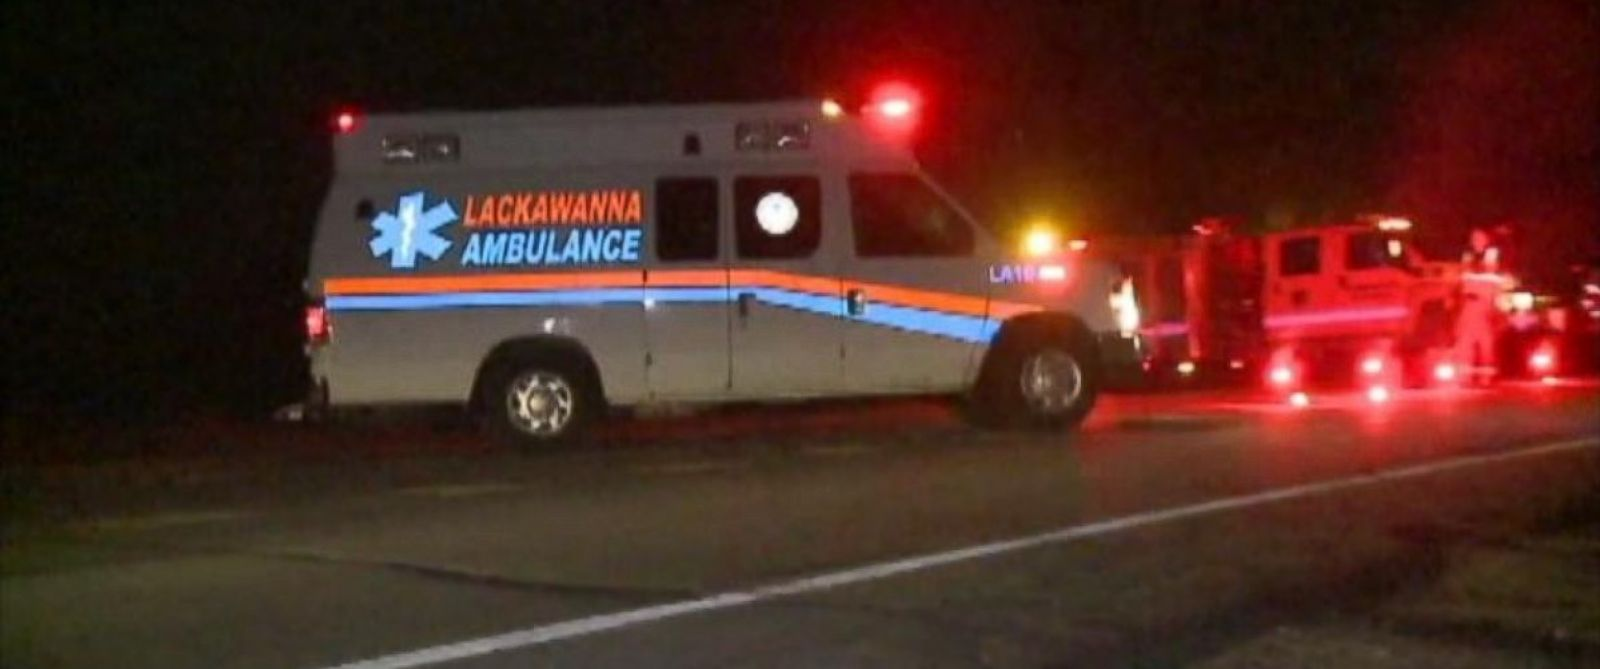 An ambulance outside the Pennsylvania State Barracks in Blooming Grove Township, Pennsylvania. One state trooper was killed and another wounded outside the barracks on Friday, September 12, 2014.